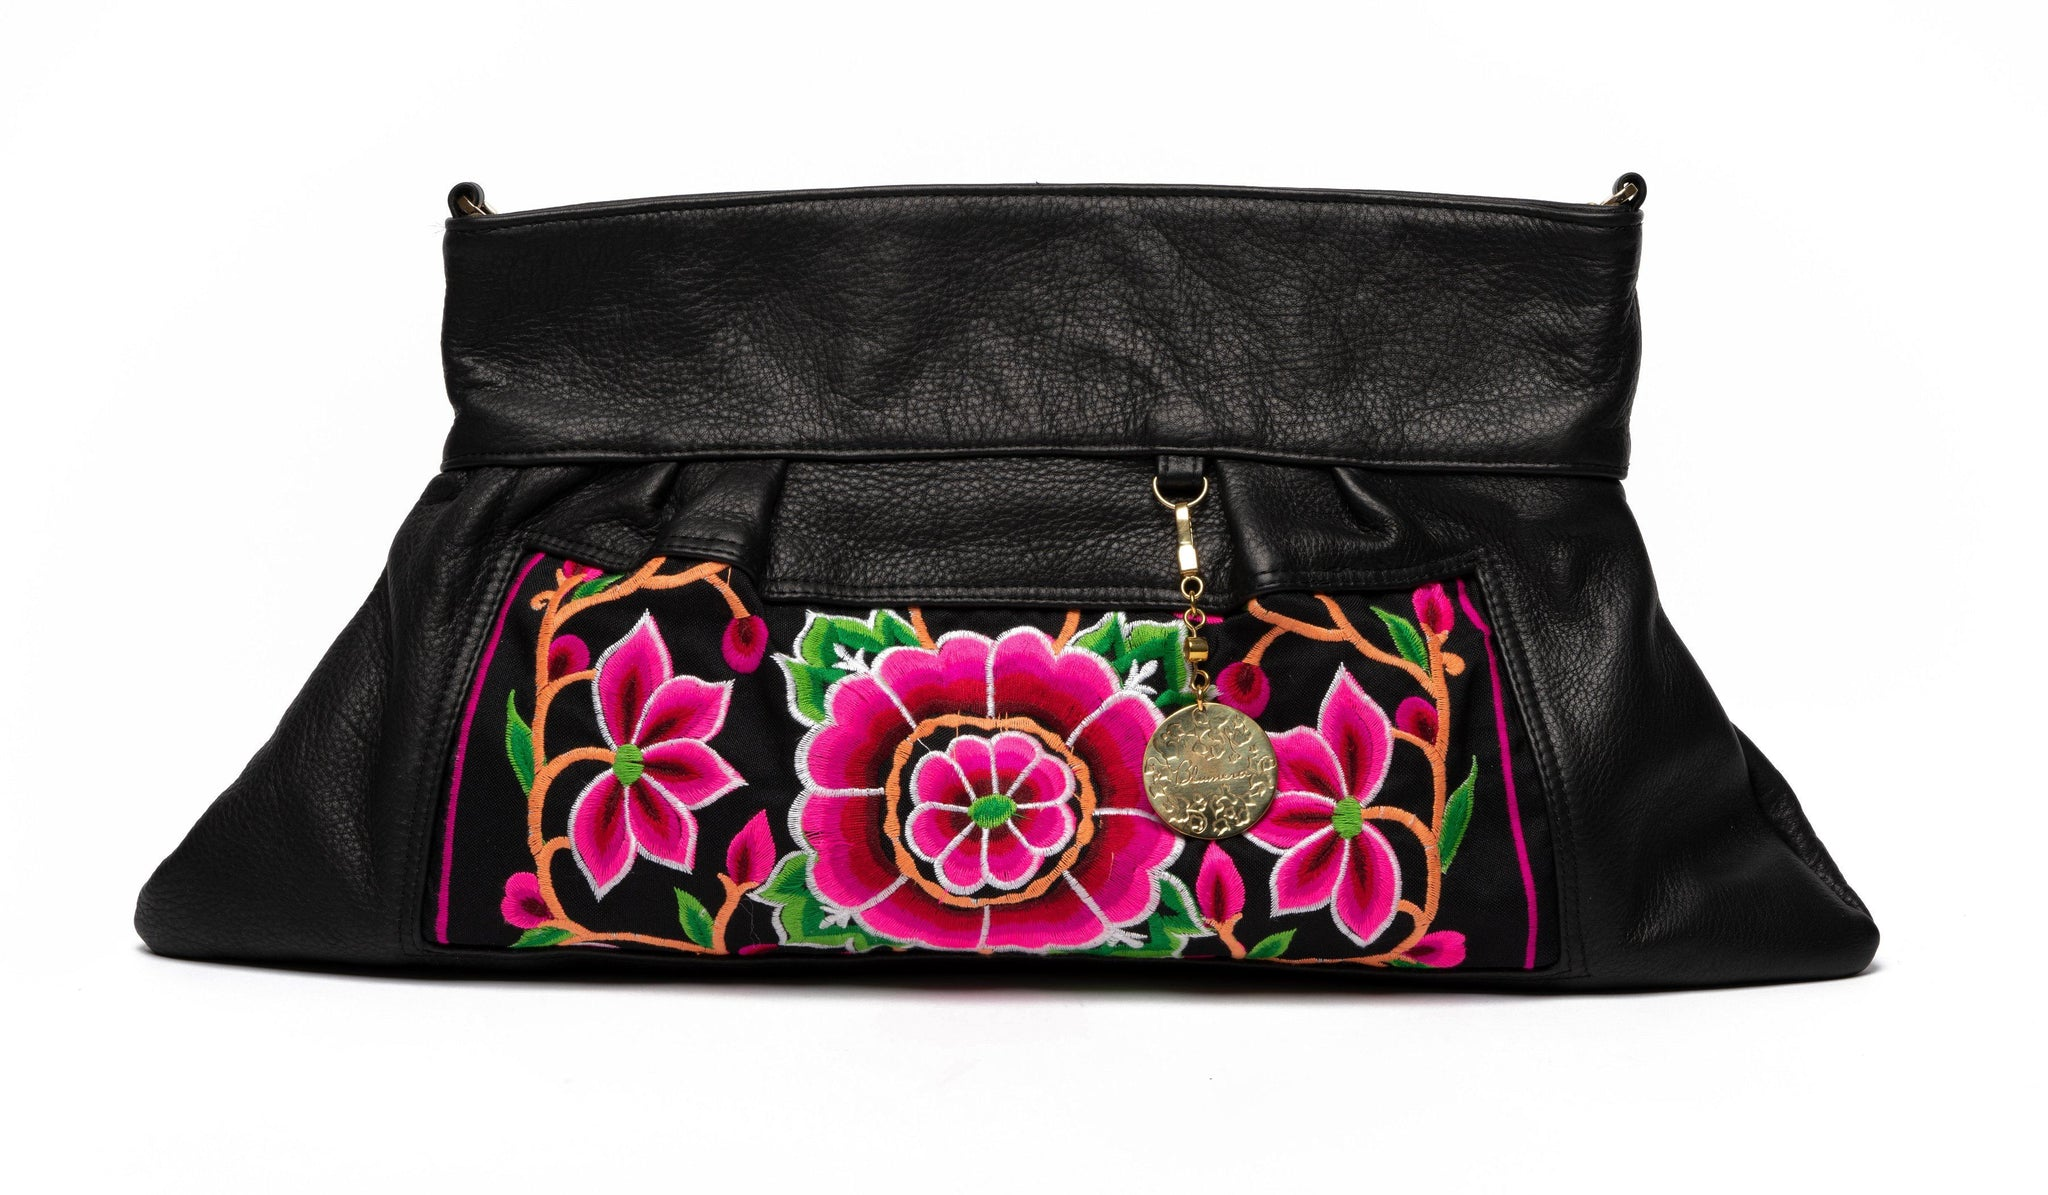 Nonny Black Leather Embroidered Oversized Clutch with optional strap - Blumera